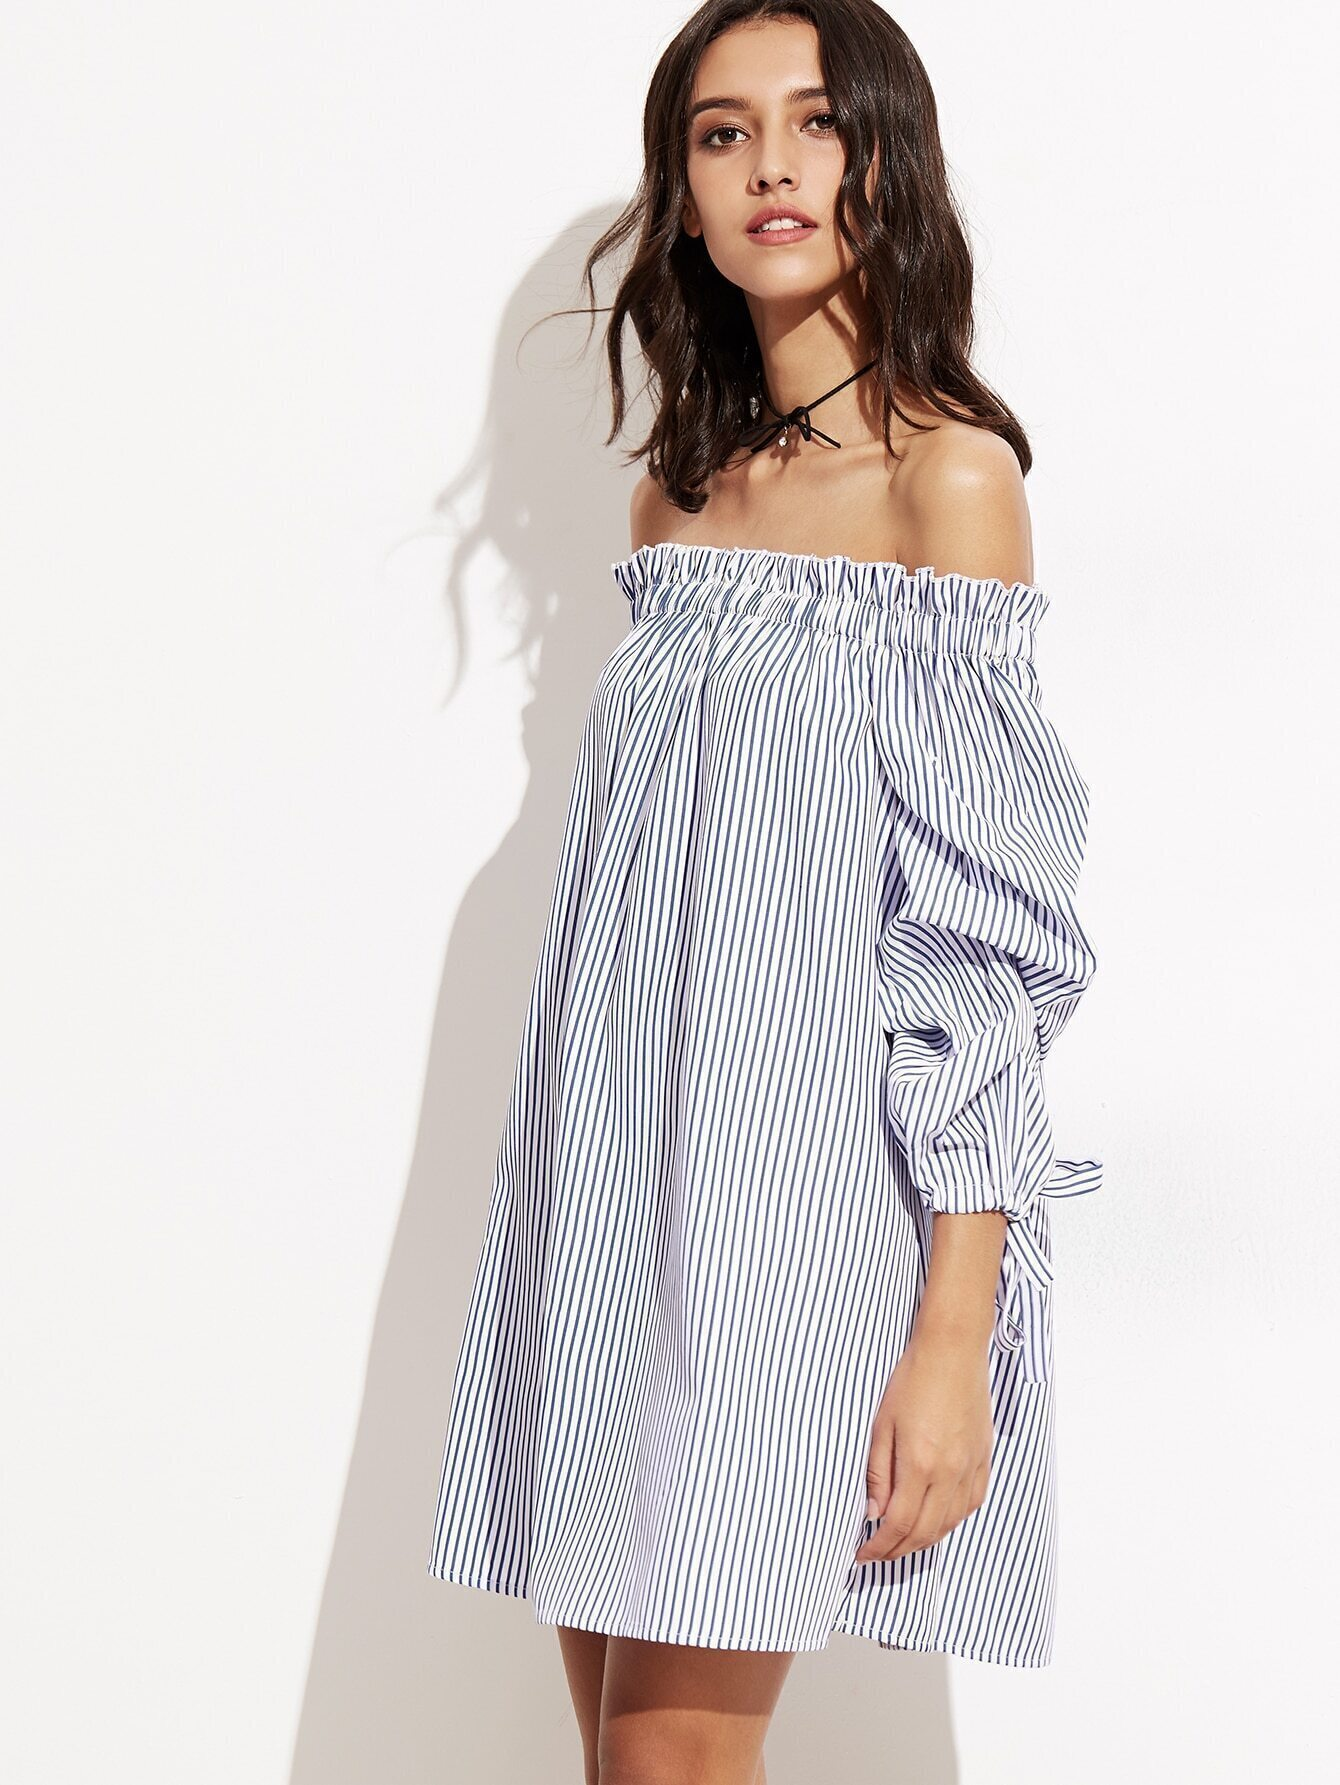 dff8756d8a Blue Vertical Striped Tie Sleeve Off The Shoulder Dress EmmaCloth ...